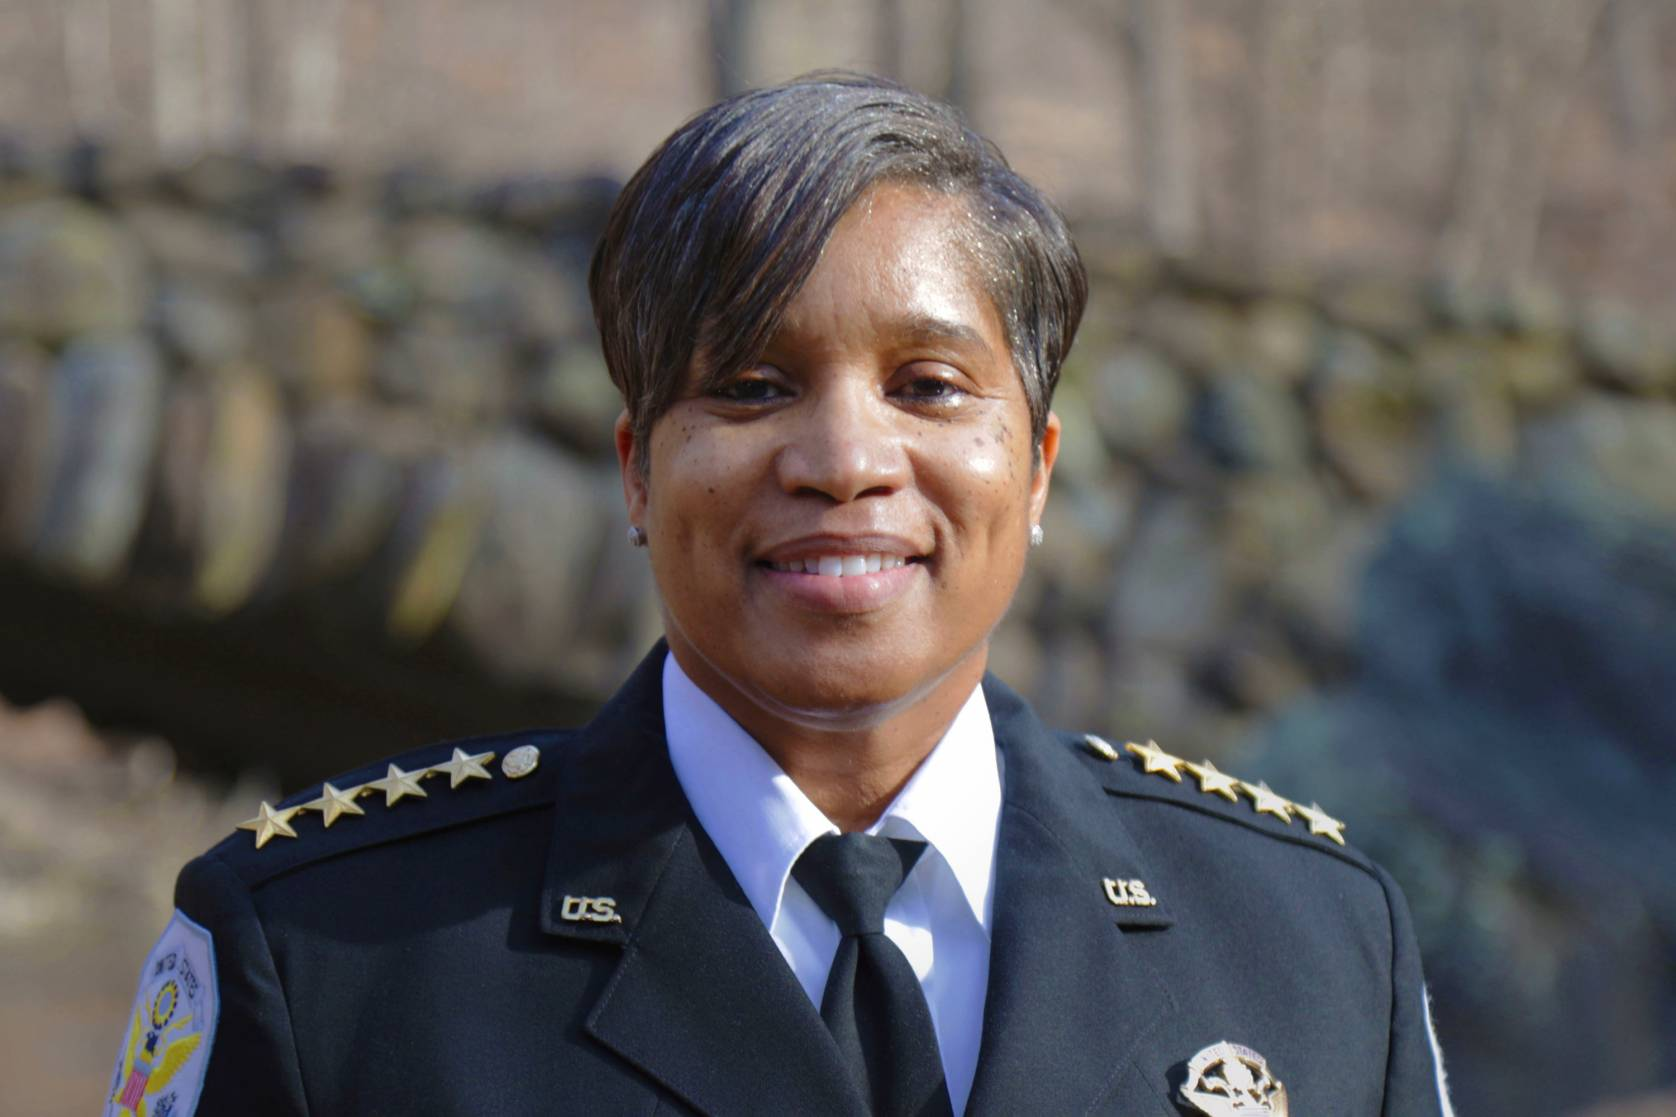 U.S. Park Police Chief Pamela A. Smith